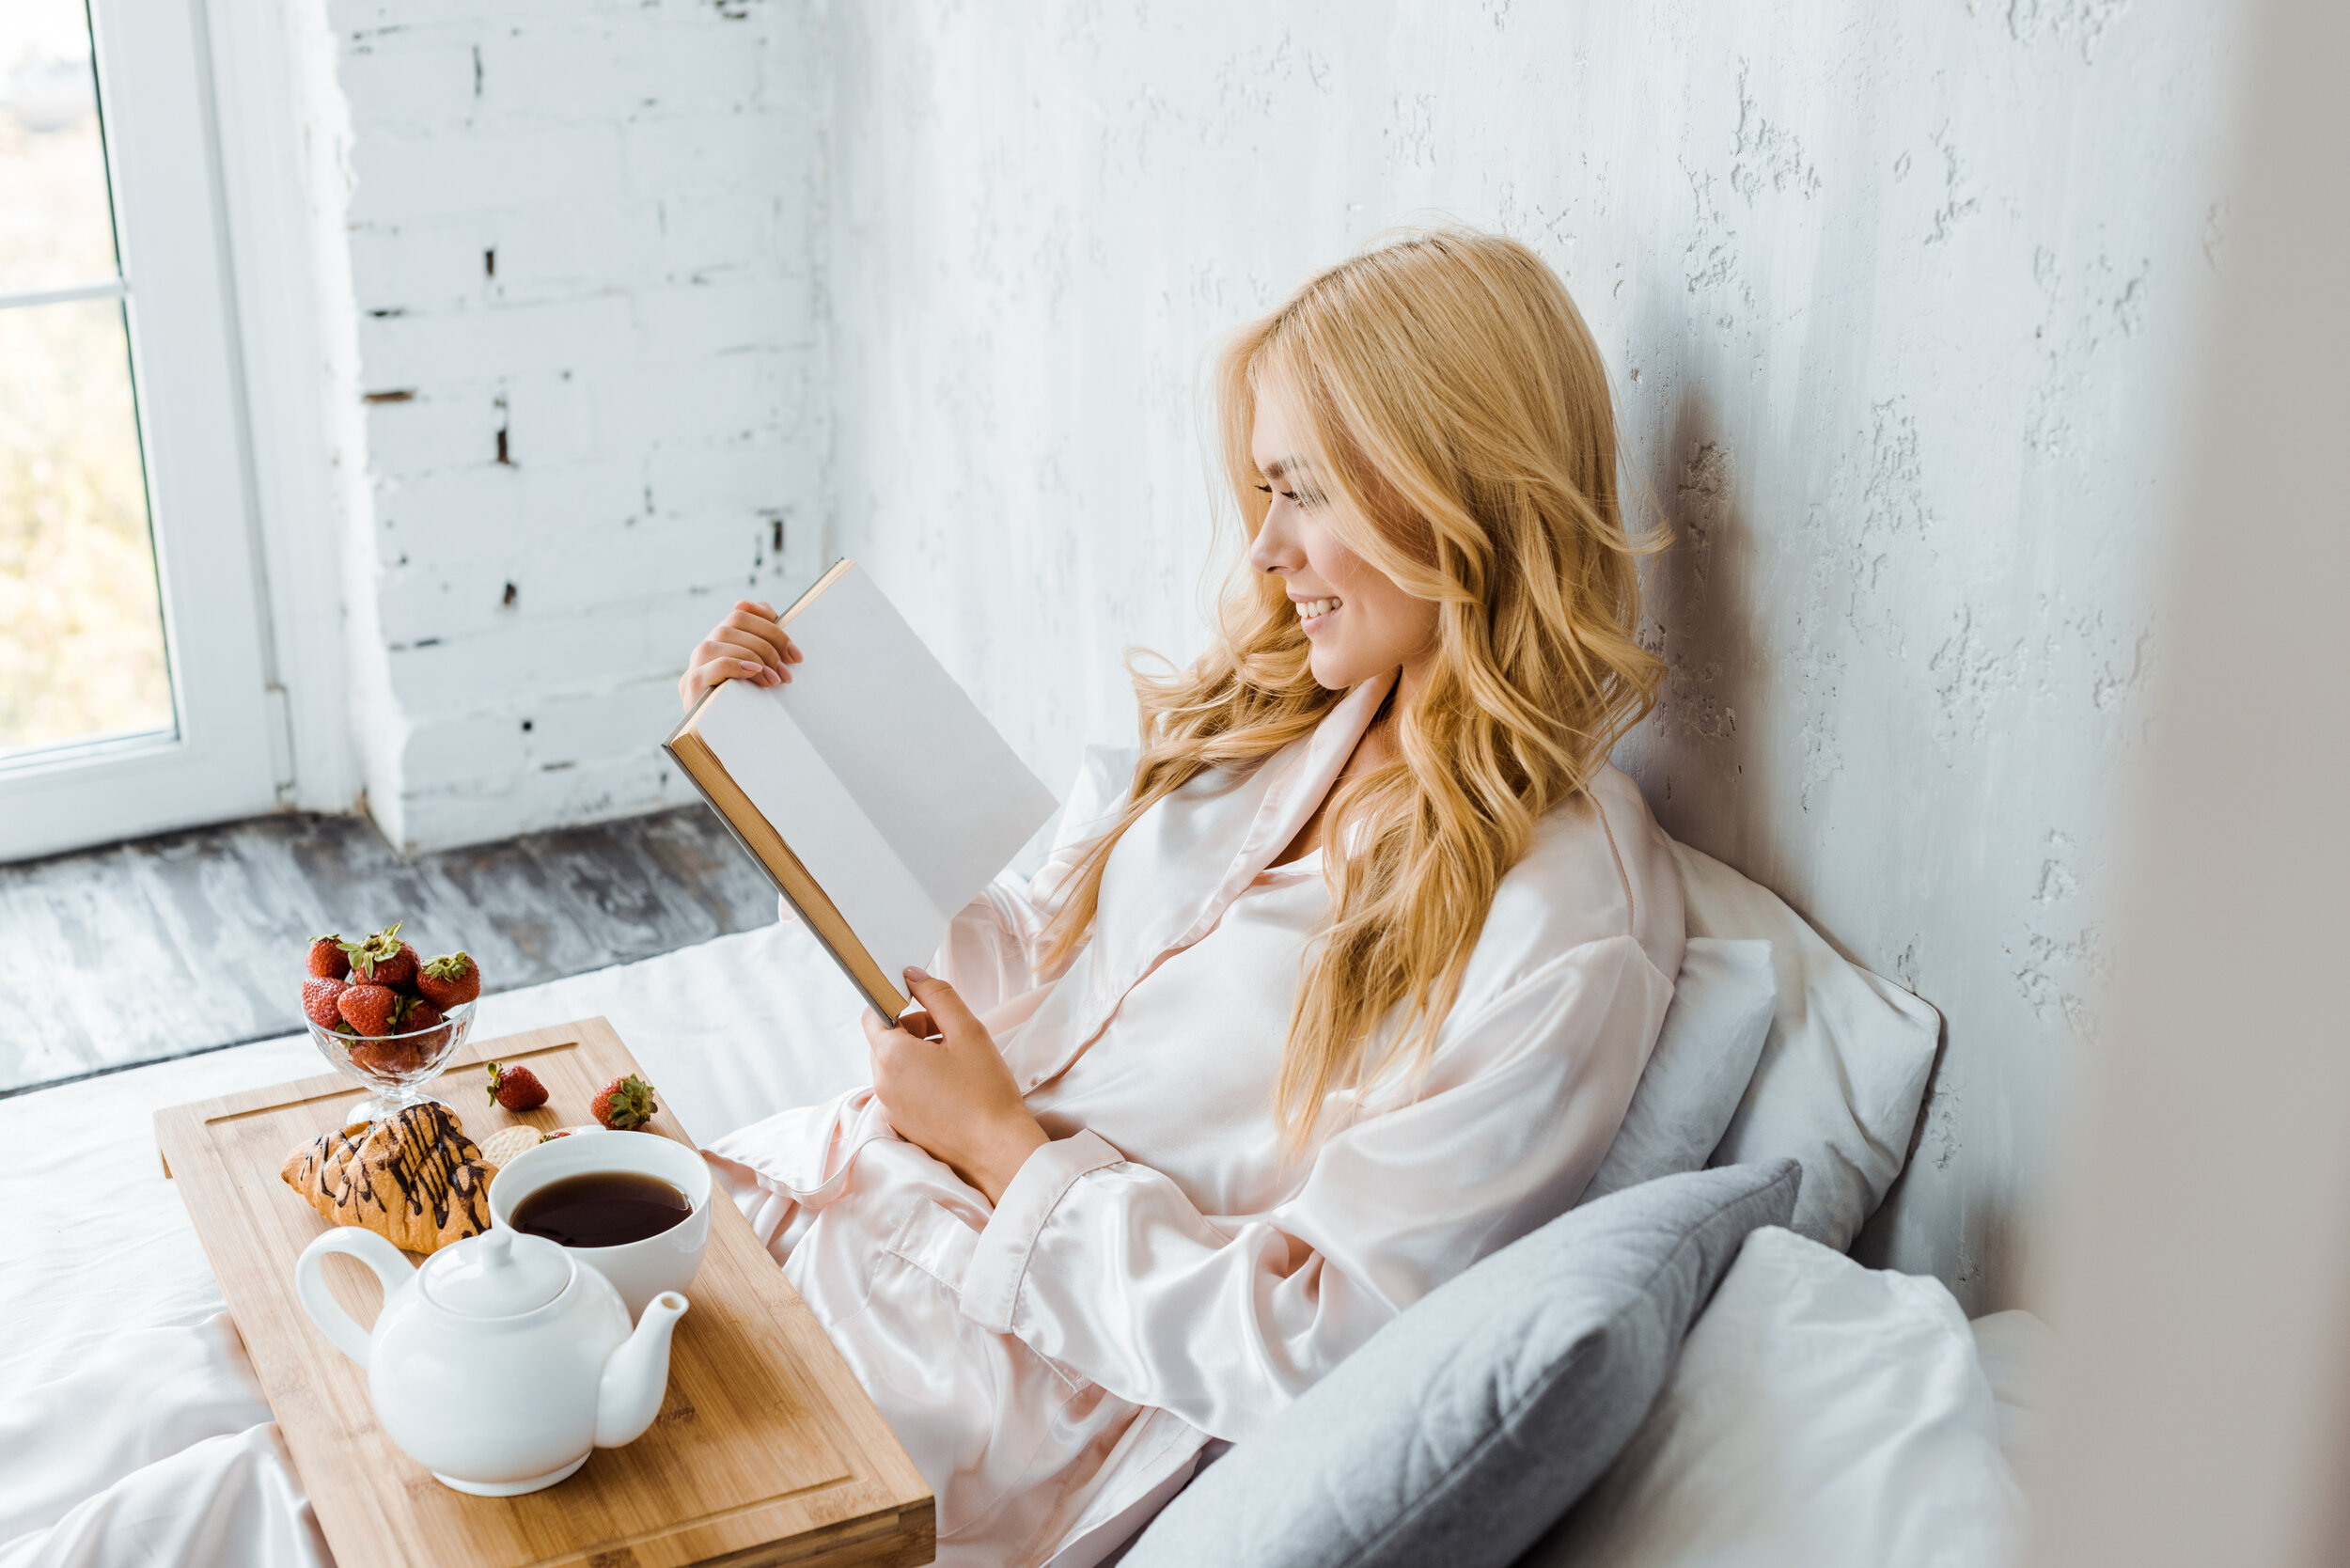 8 Tips for Streamlining Your Morning Routine